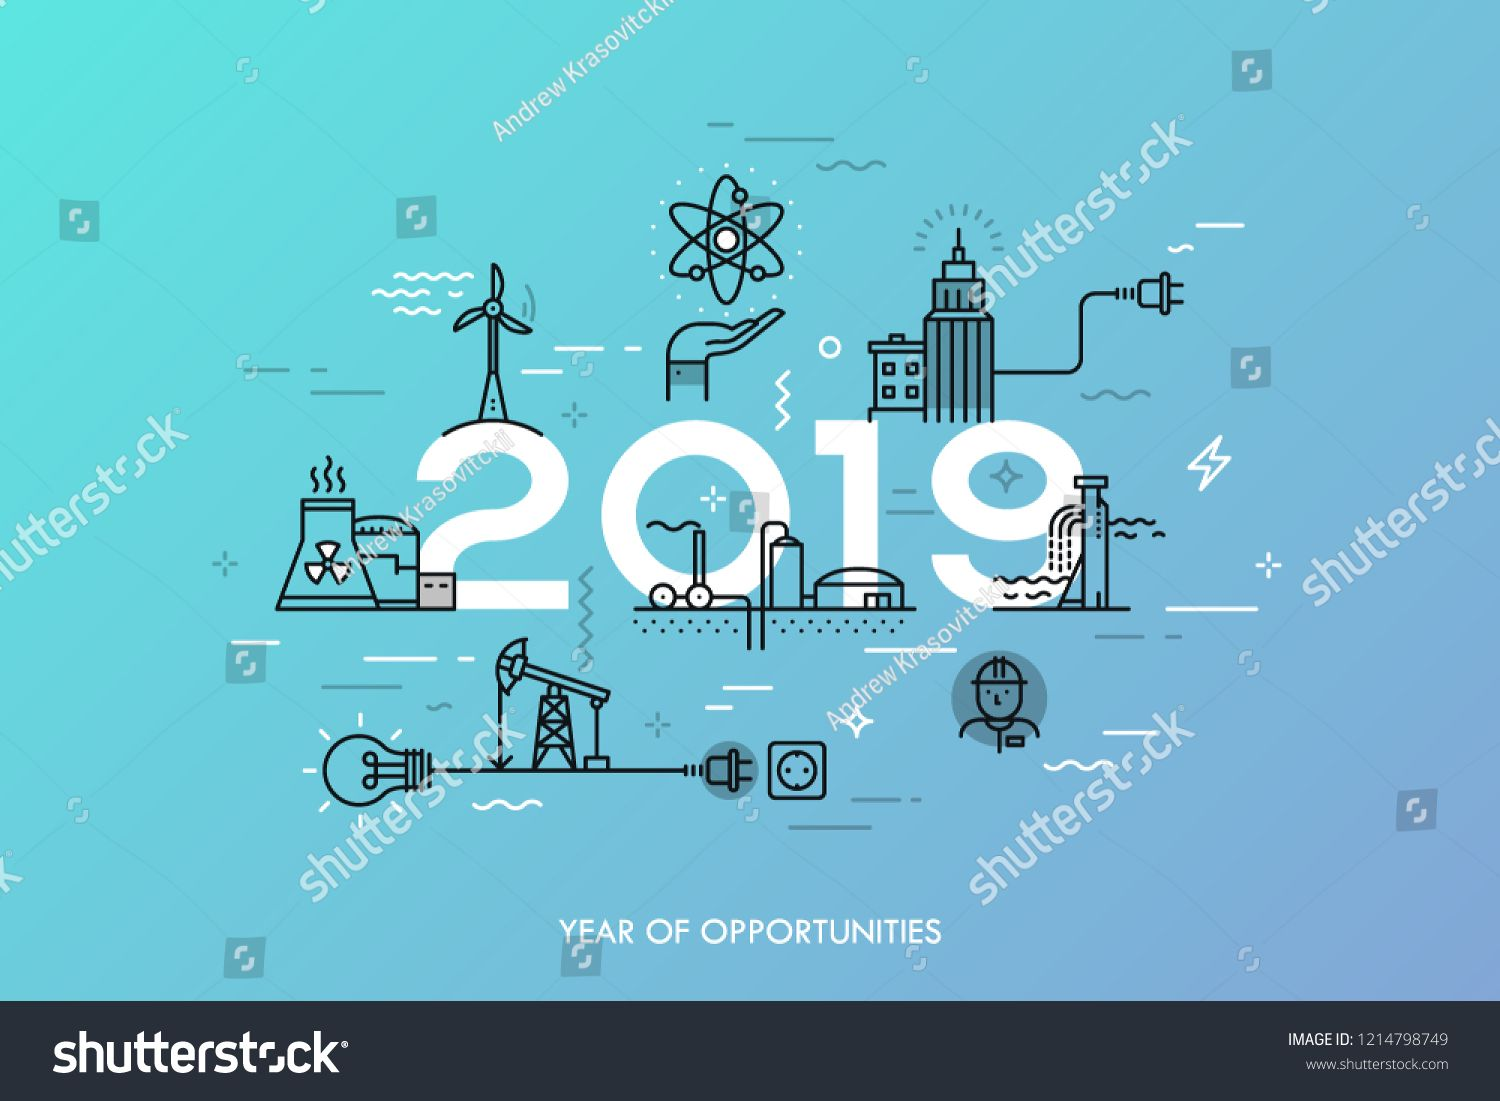 Infographic banner, 2019 year of opportunities. Trends